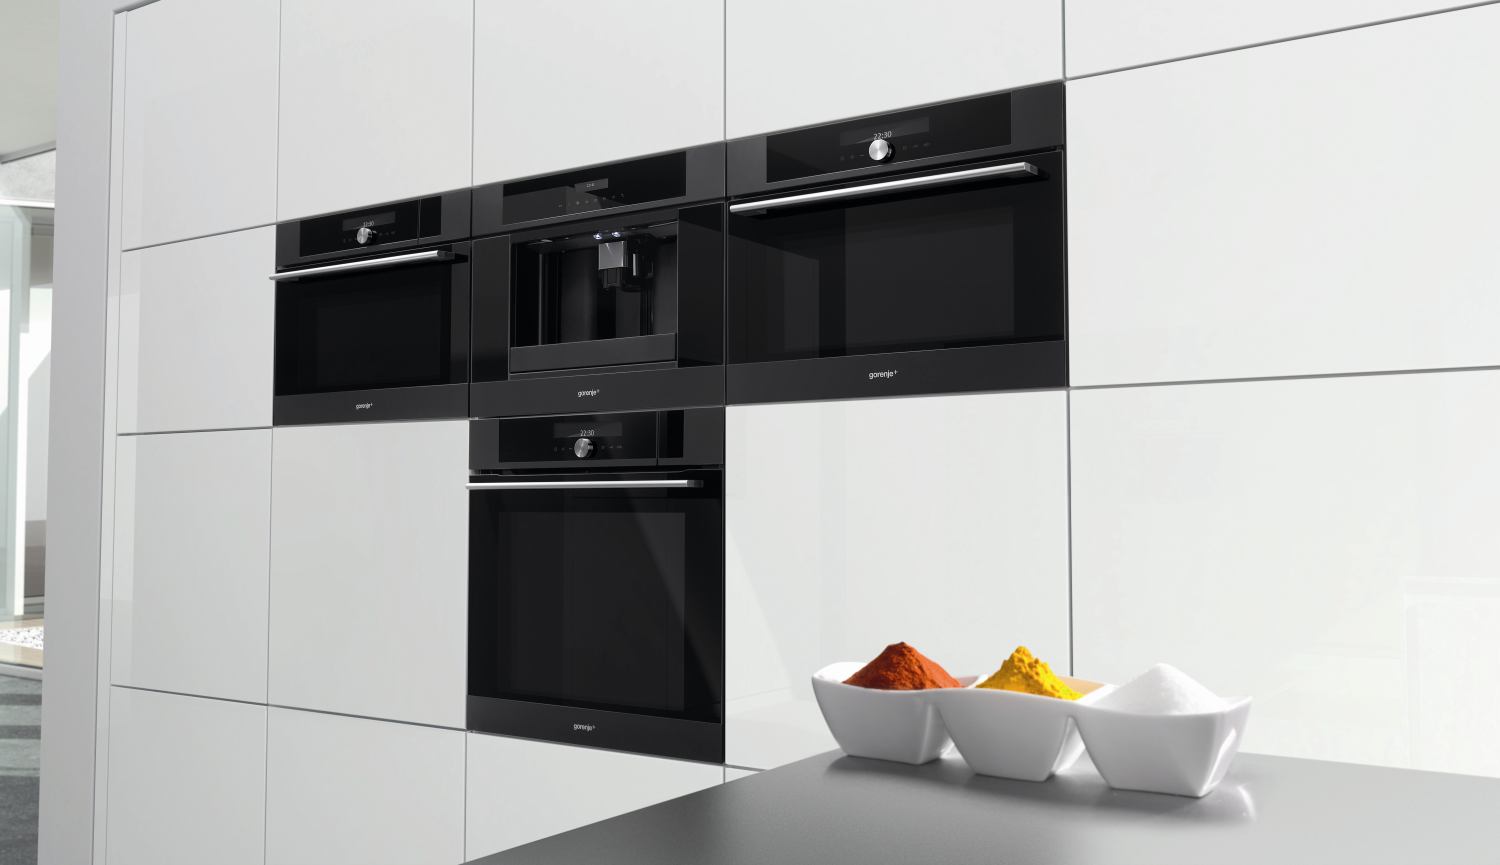 gorenje cooking